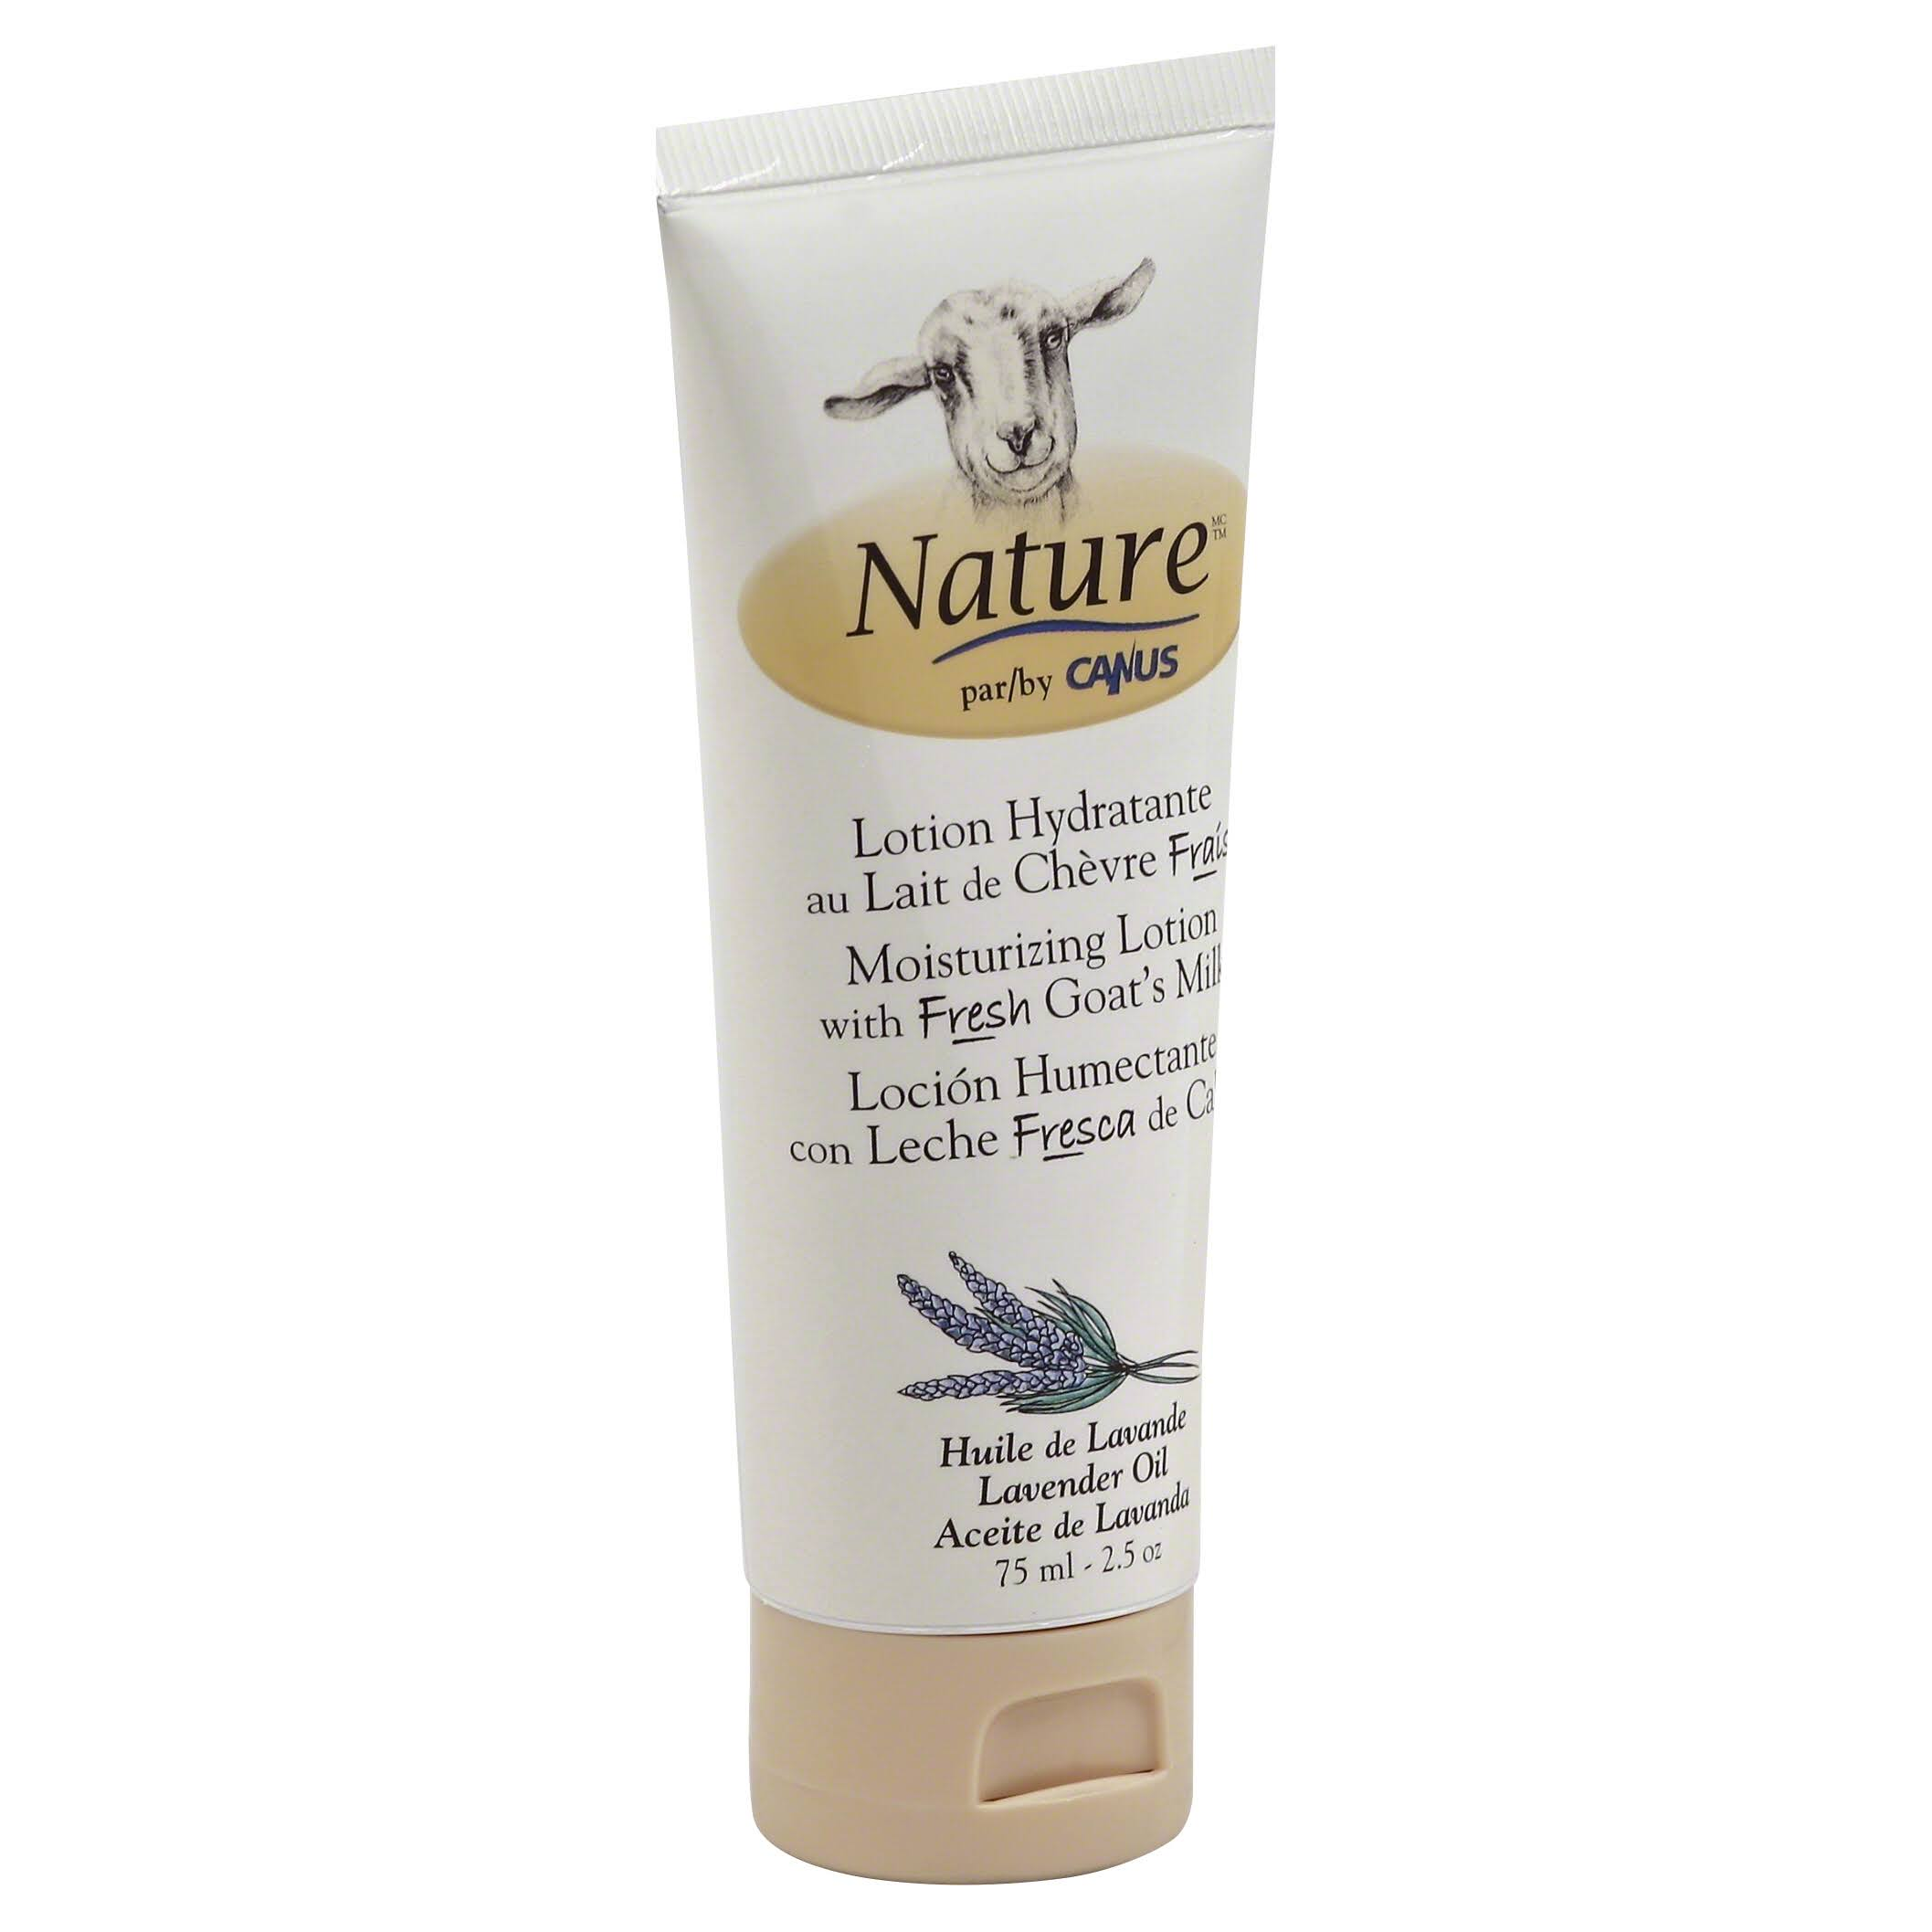 Nature by Canus Lotion Lavender Oil - 2.5oz